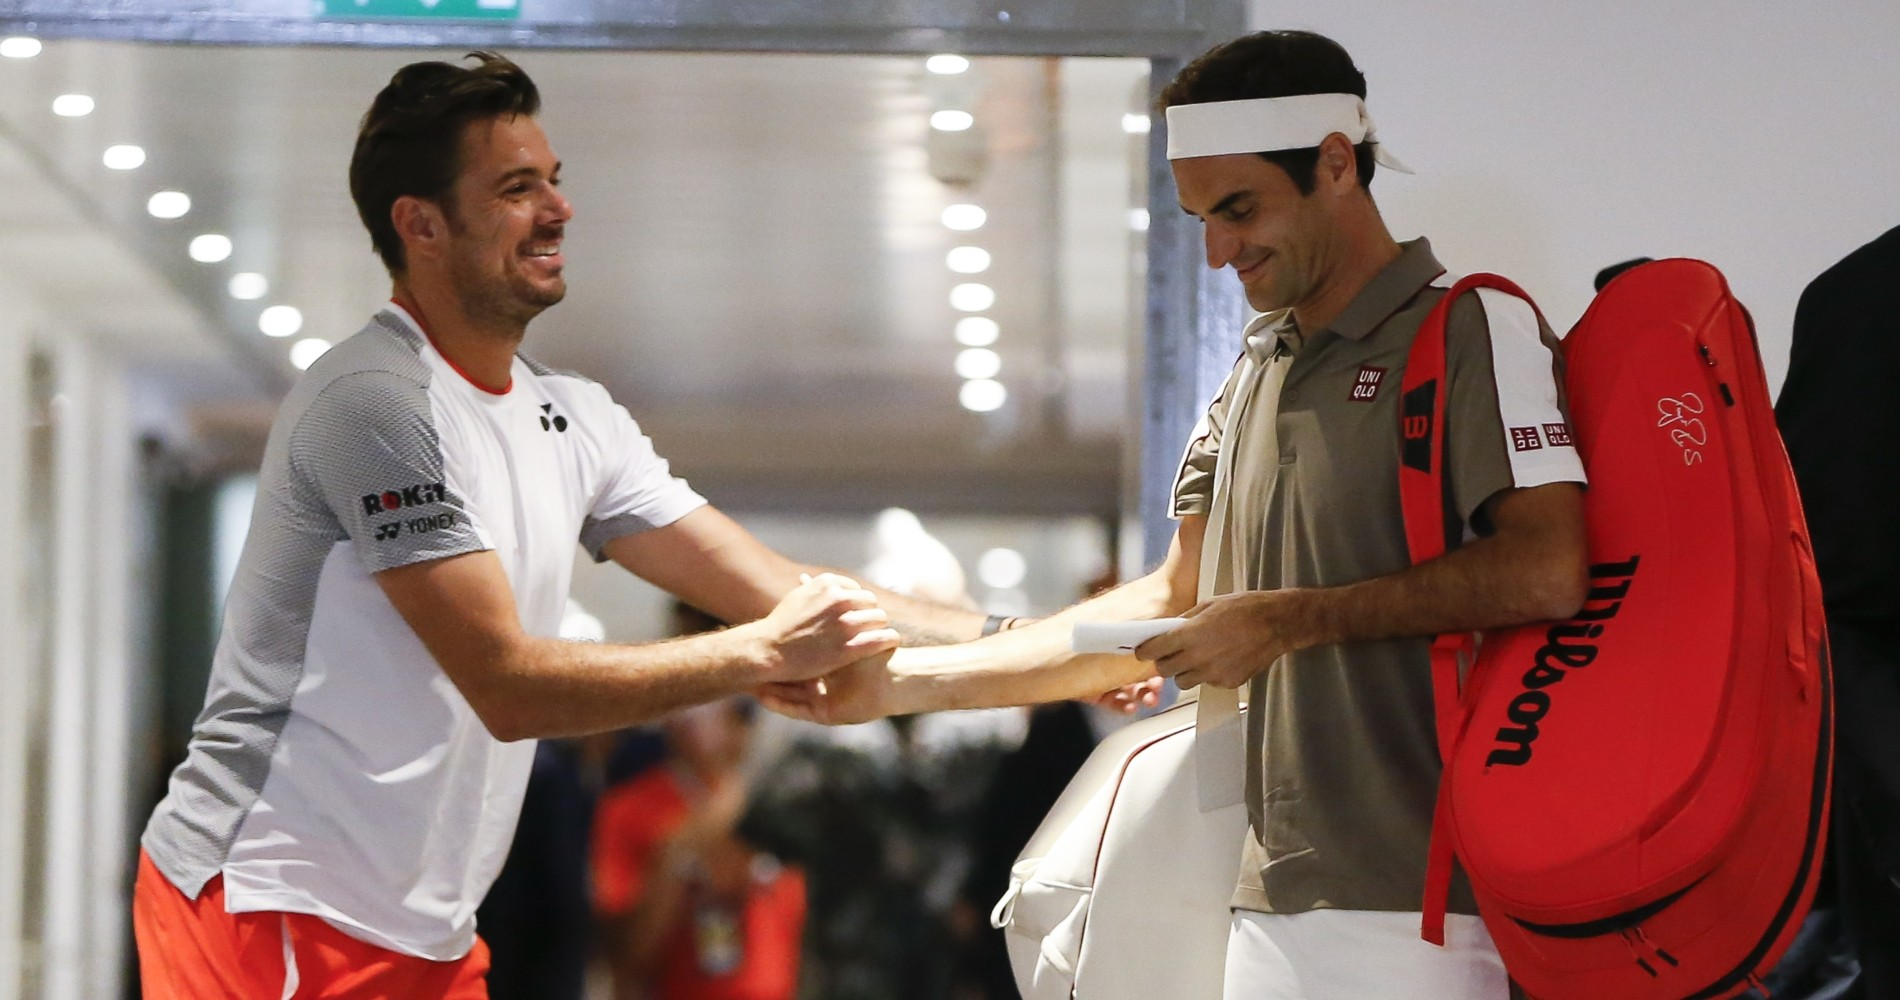 Stan Wawrinka and Roger Federer before their quarter-final encounter during the 2019 French Open